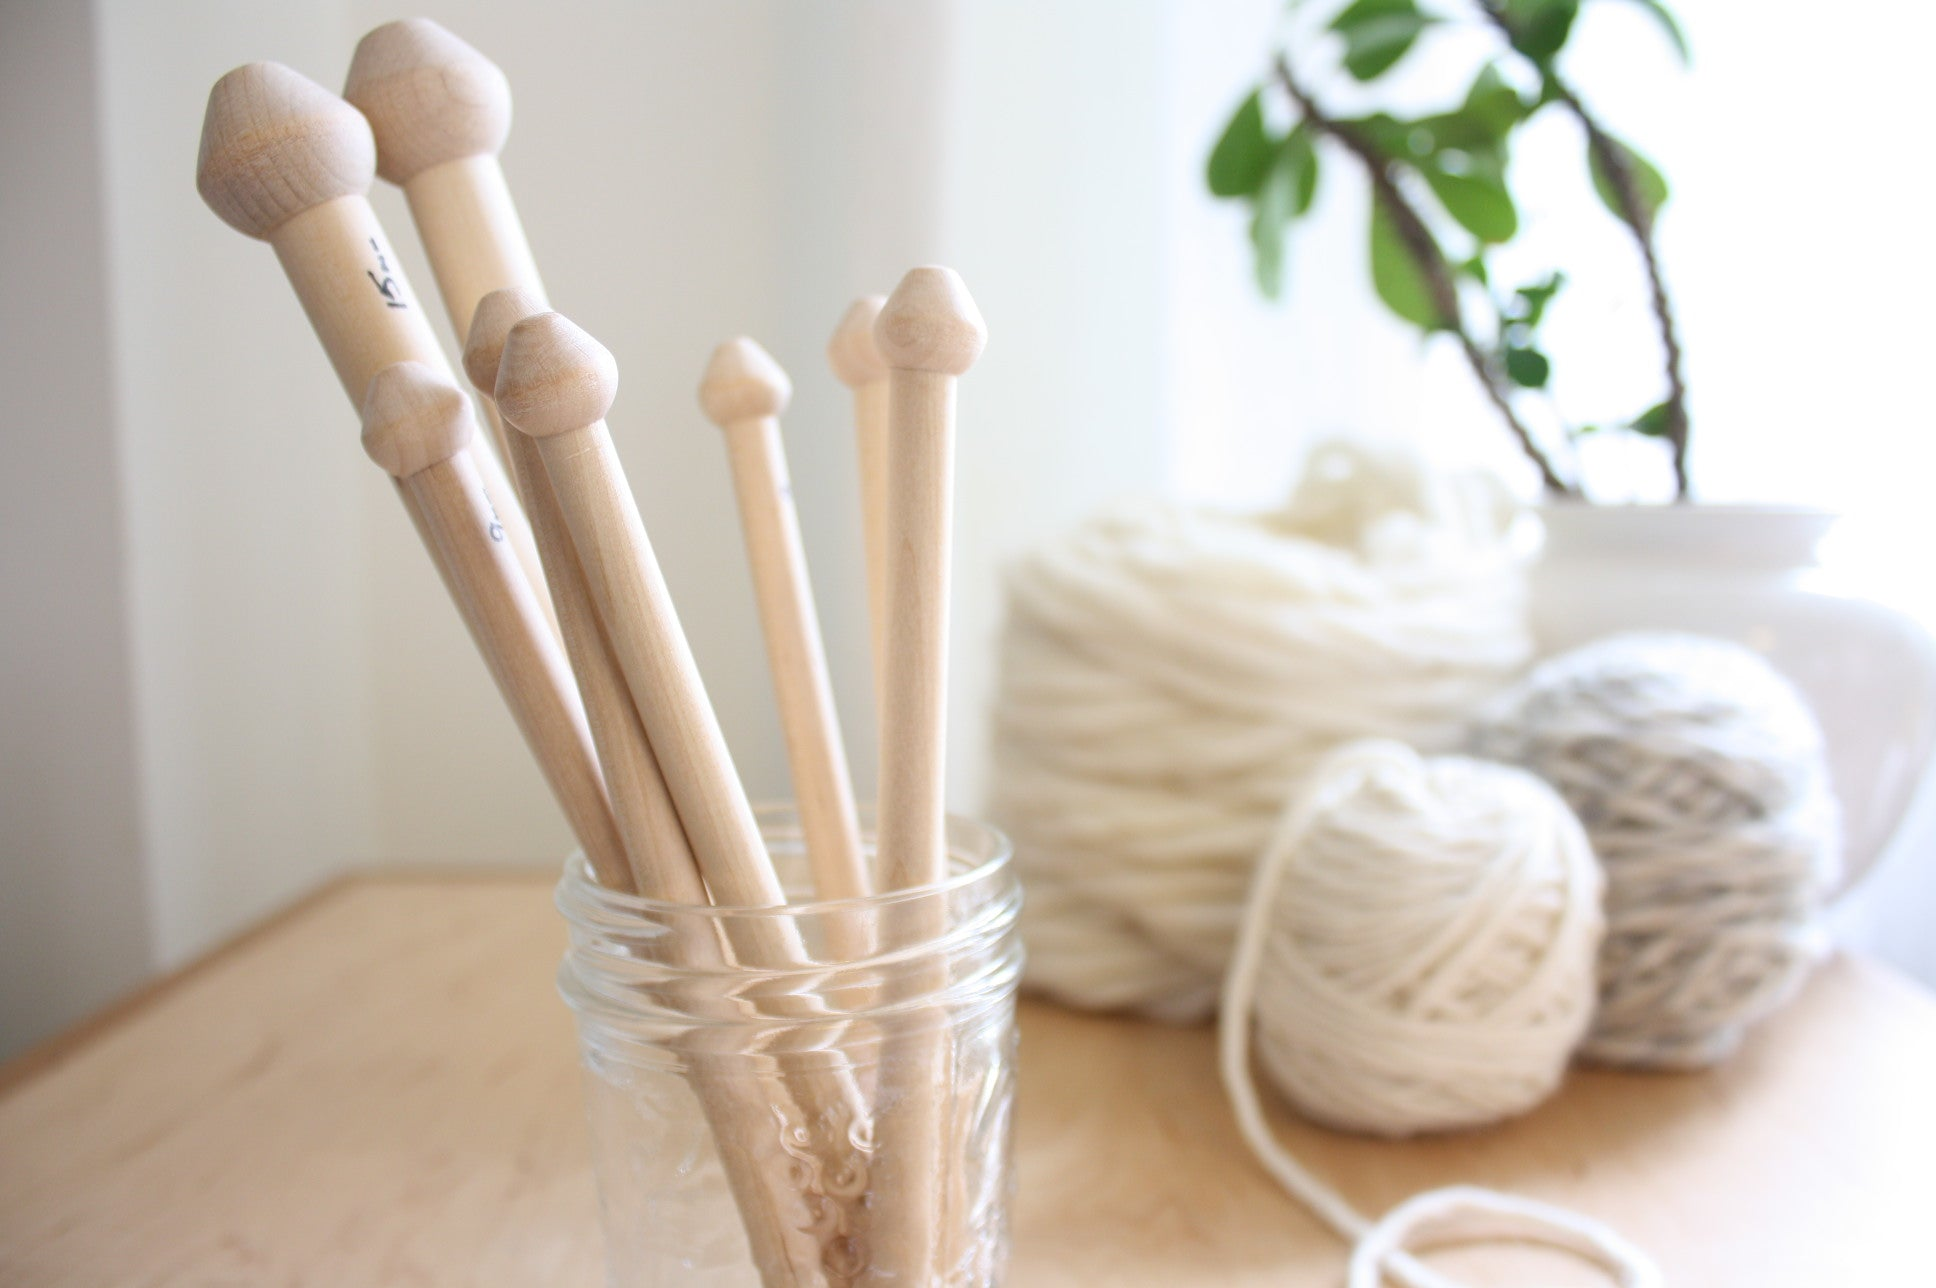 Birch Wood Knitting Needles, hand crafted in Nova Scotia